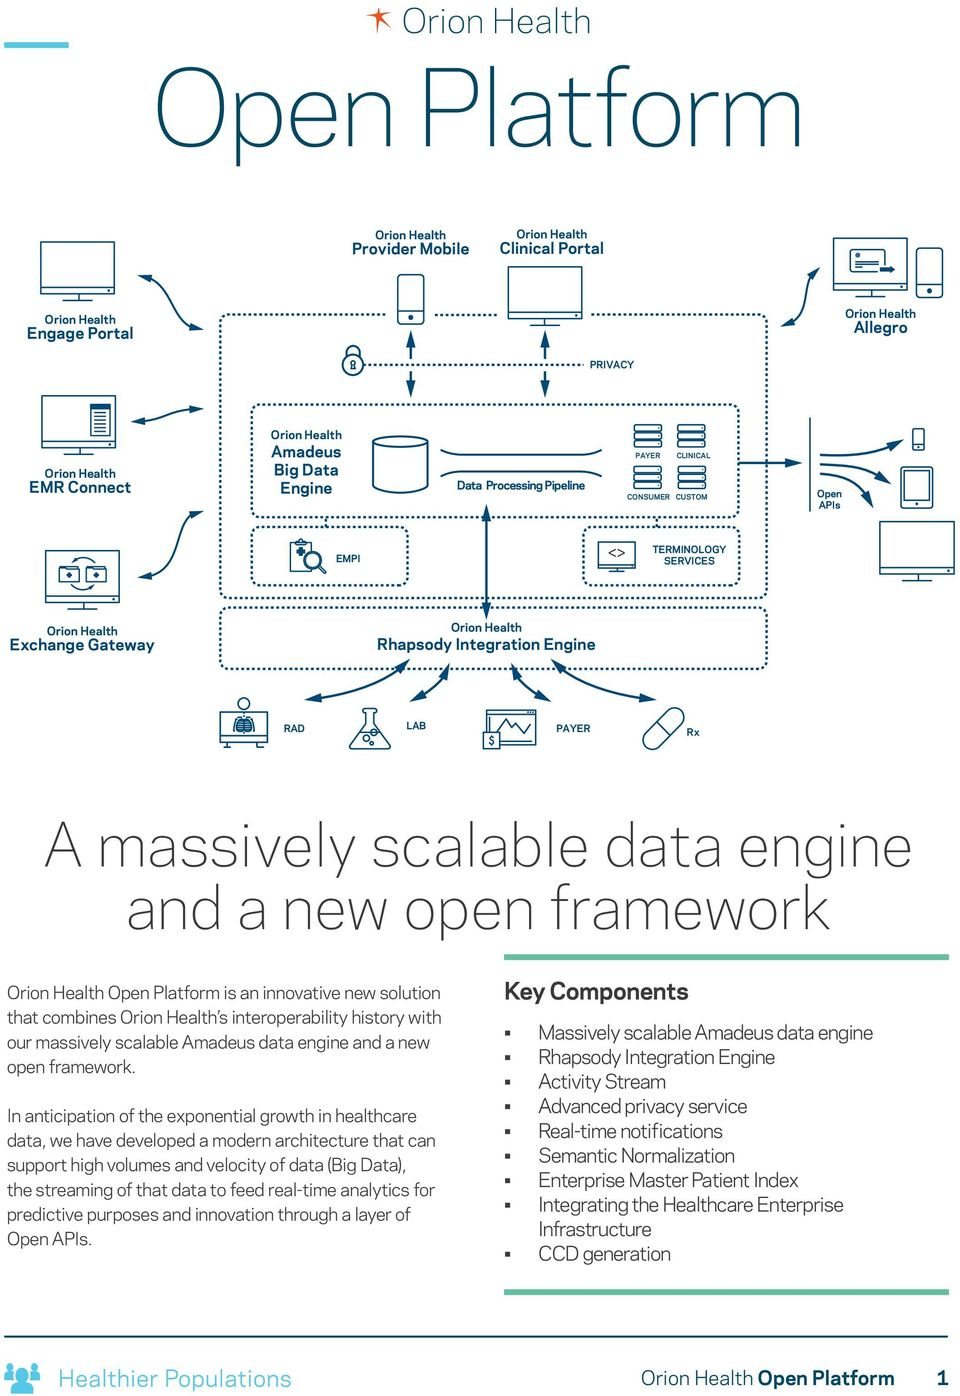 interoperability history with our massively scalable Amadeus data engine and a new open framework.